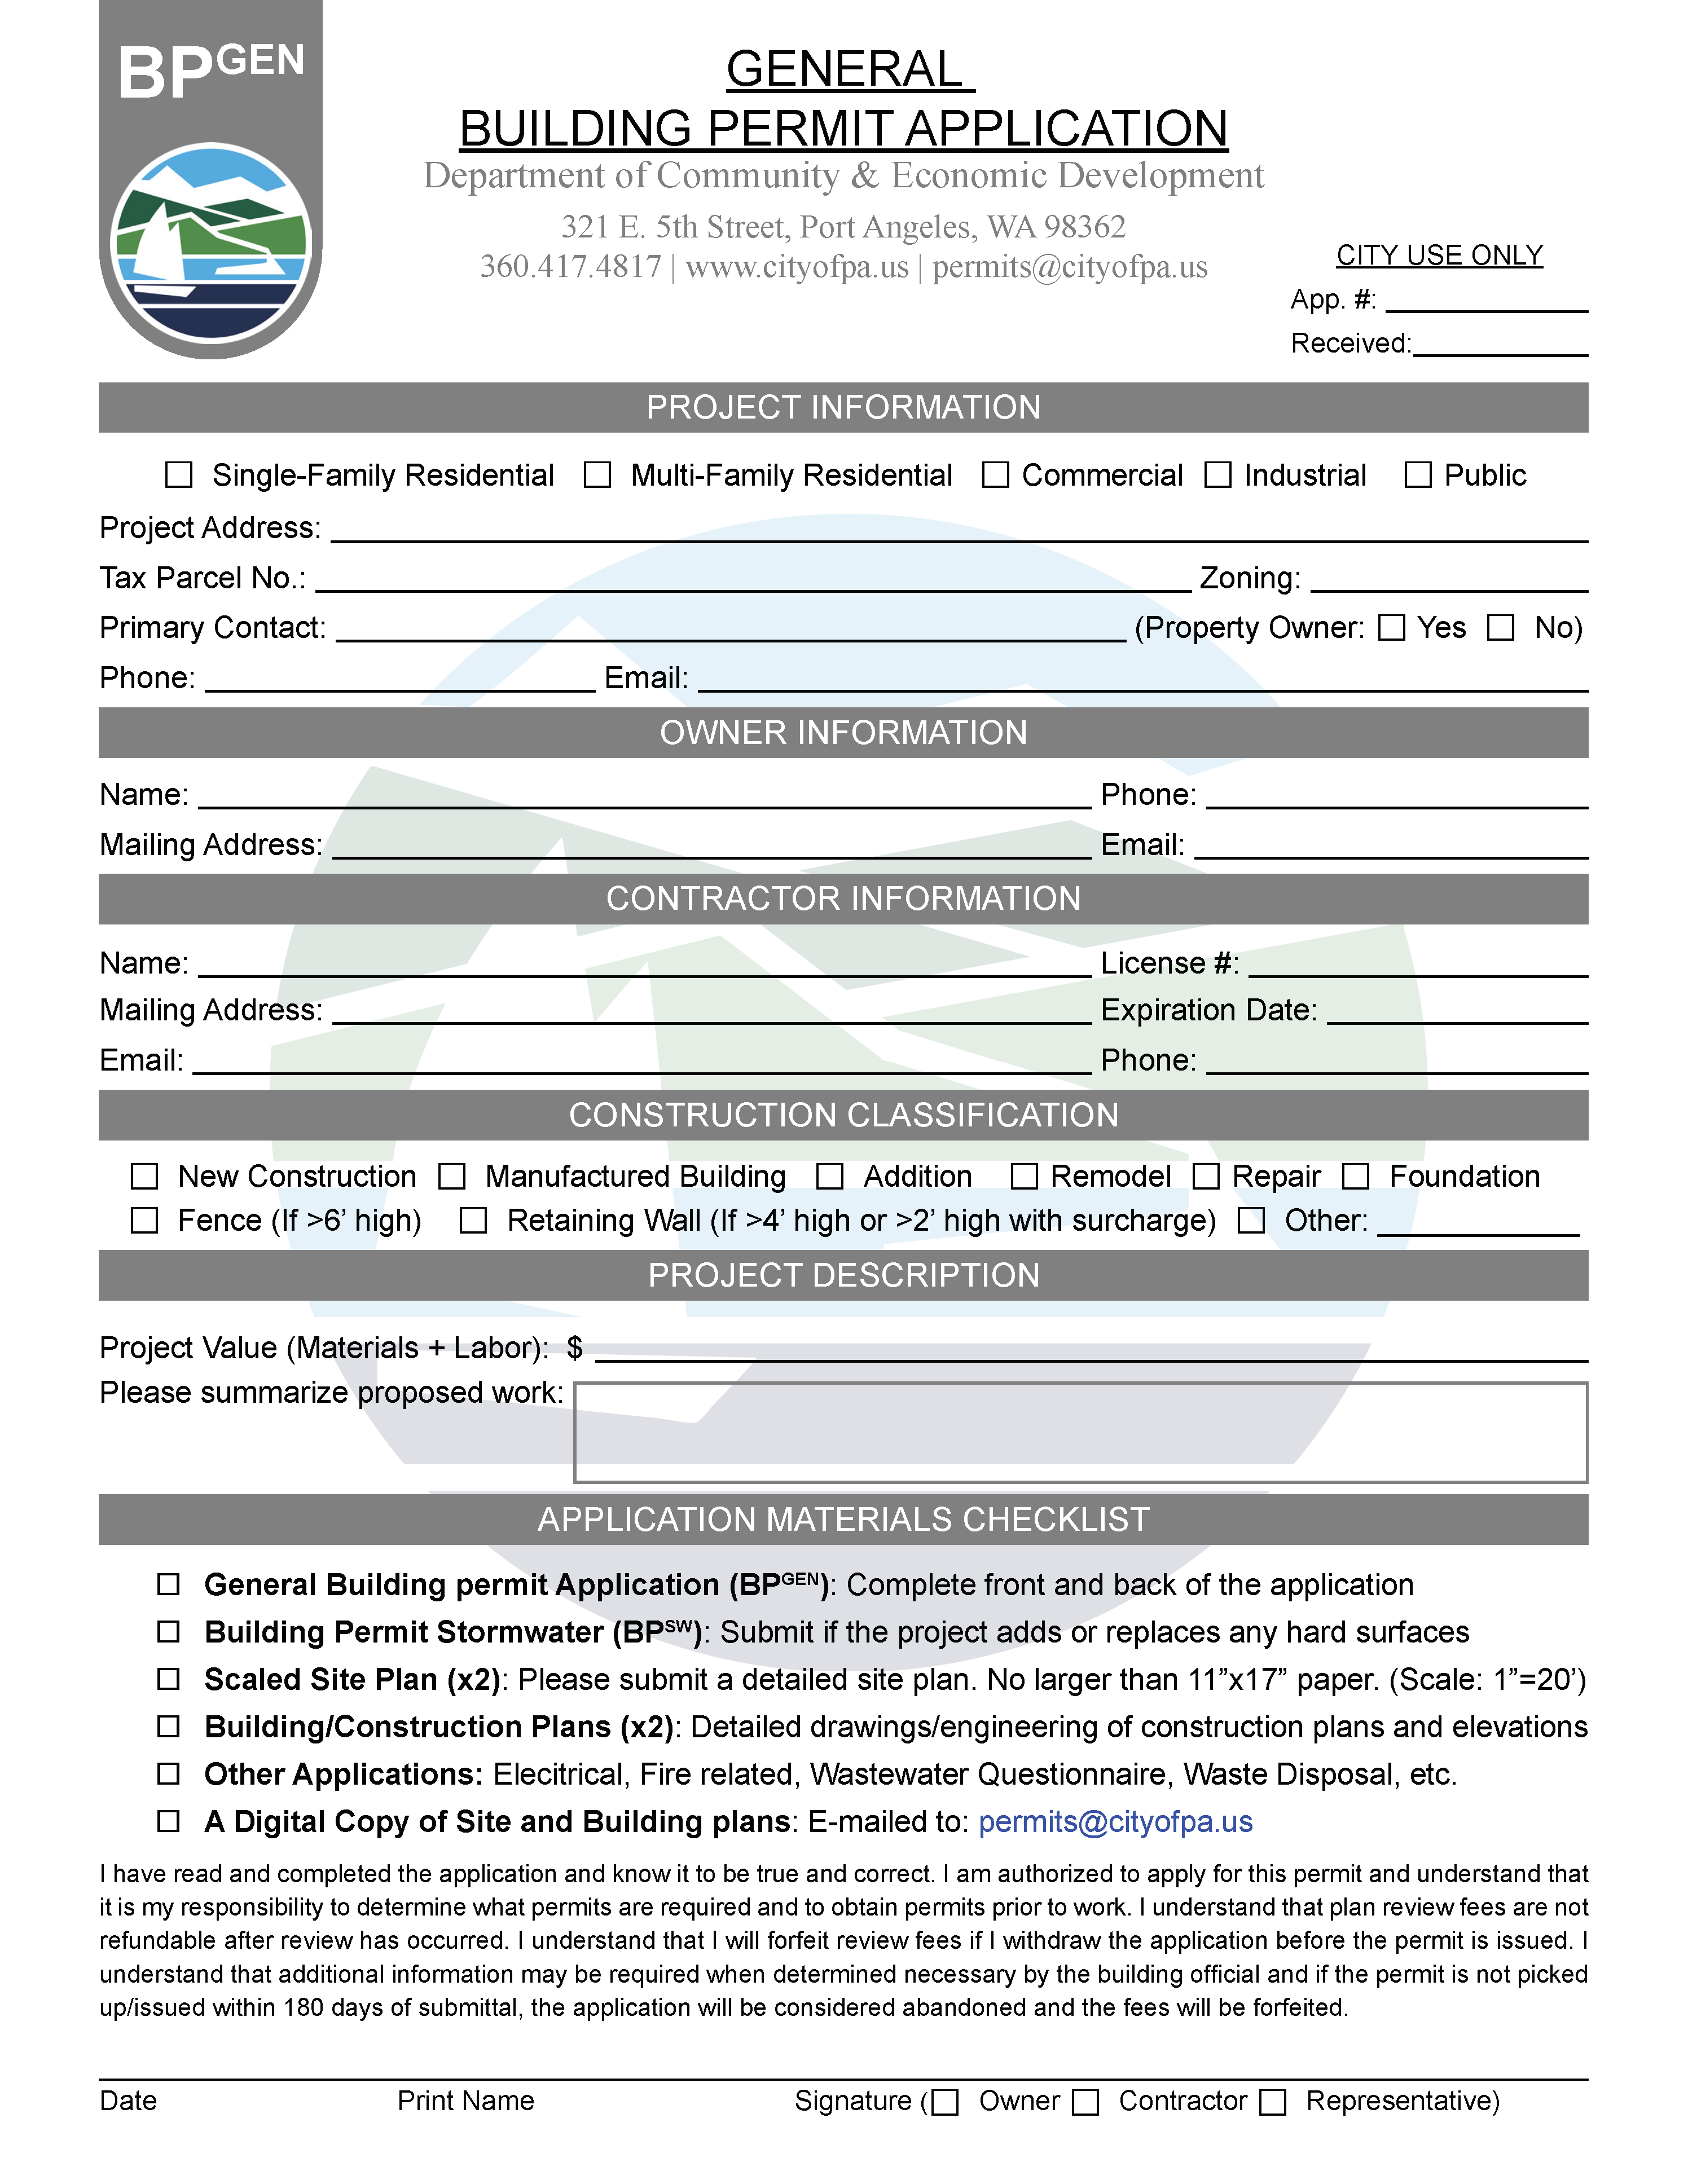 General Building Permit Application